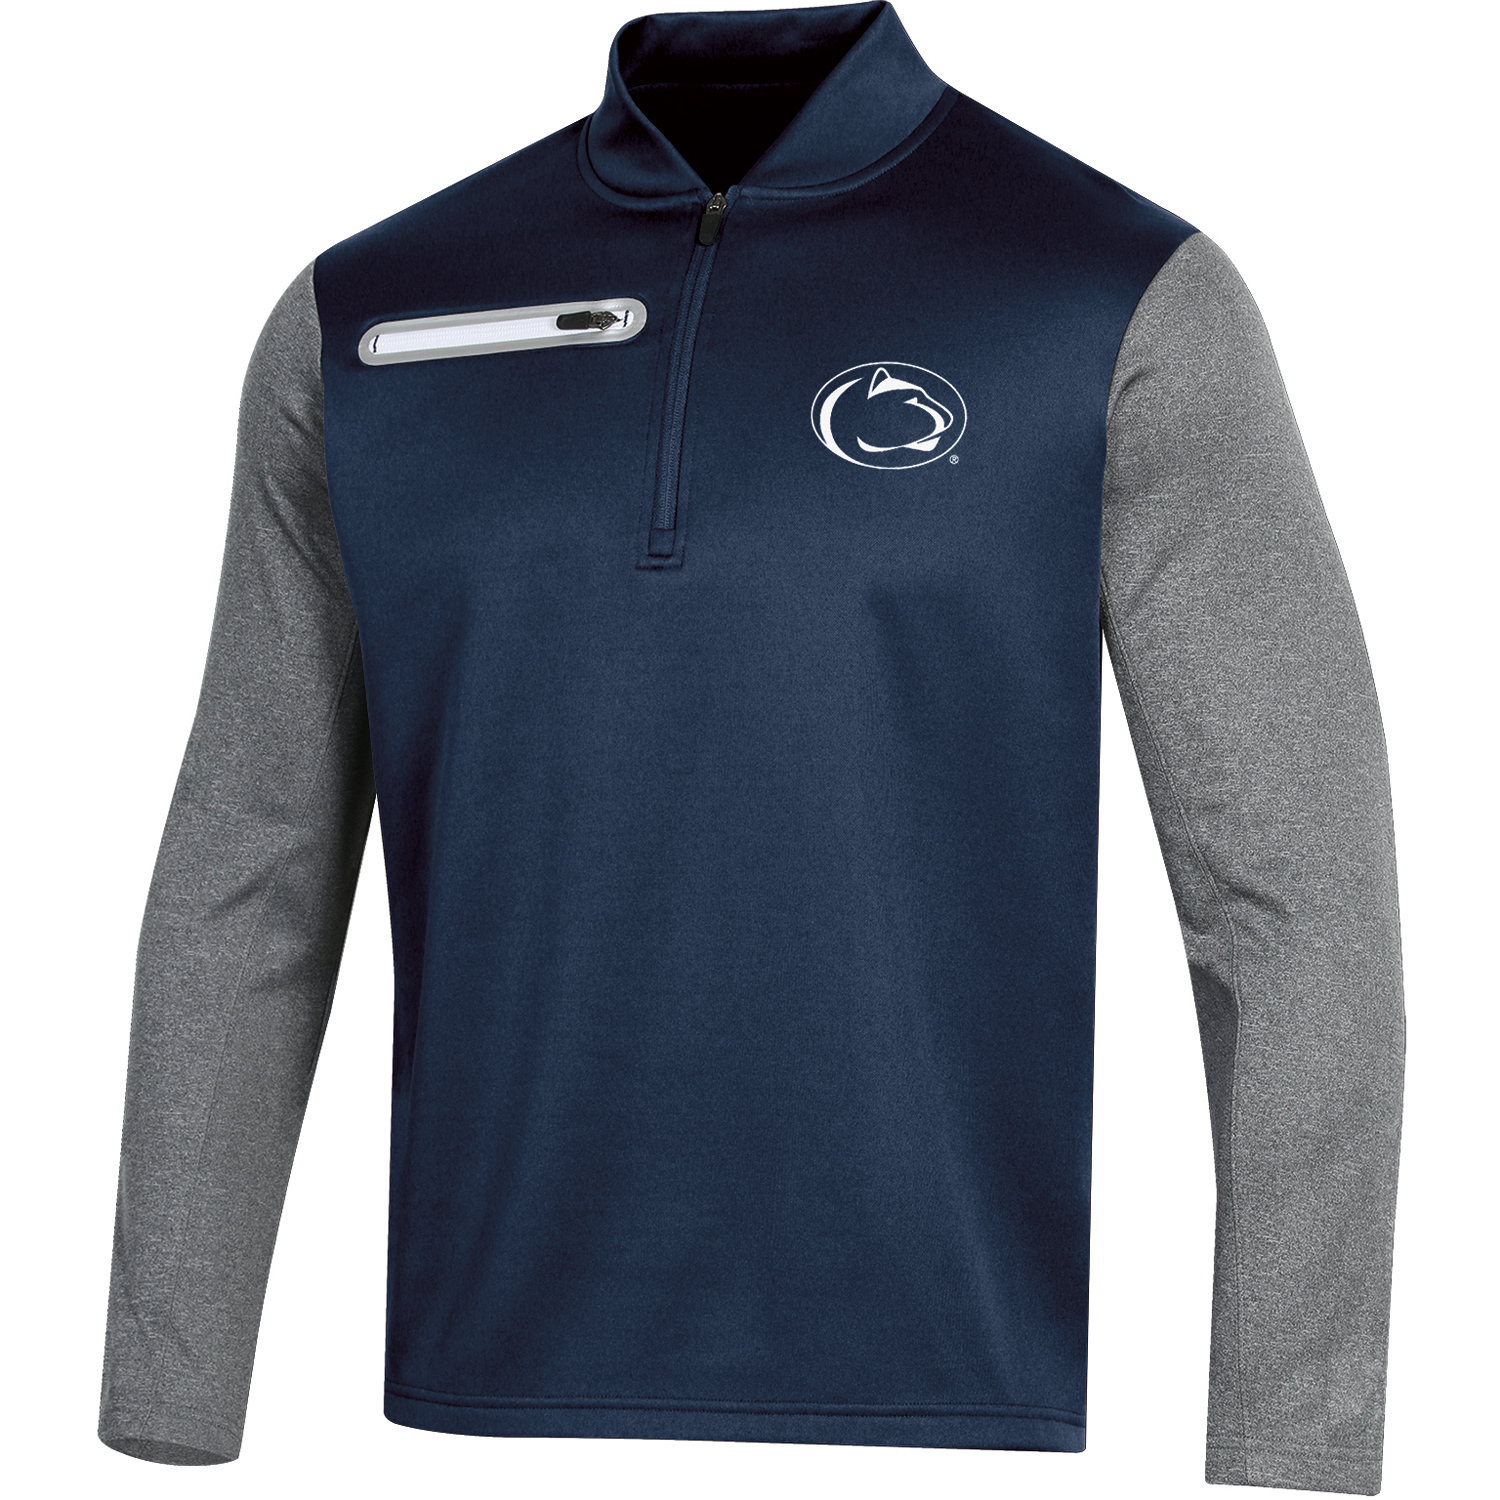 Men's Russell Navy Penn State Nittany Lions Colorblock Half-Zip Pullover Jacket